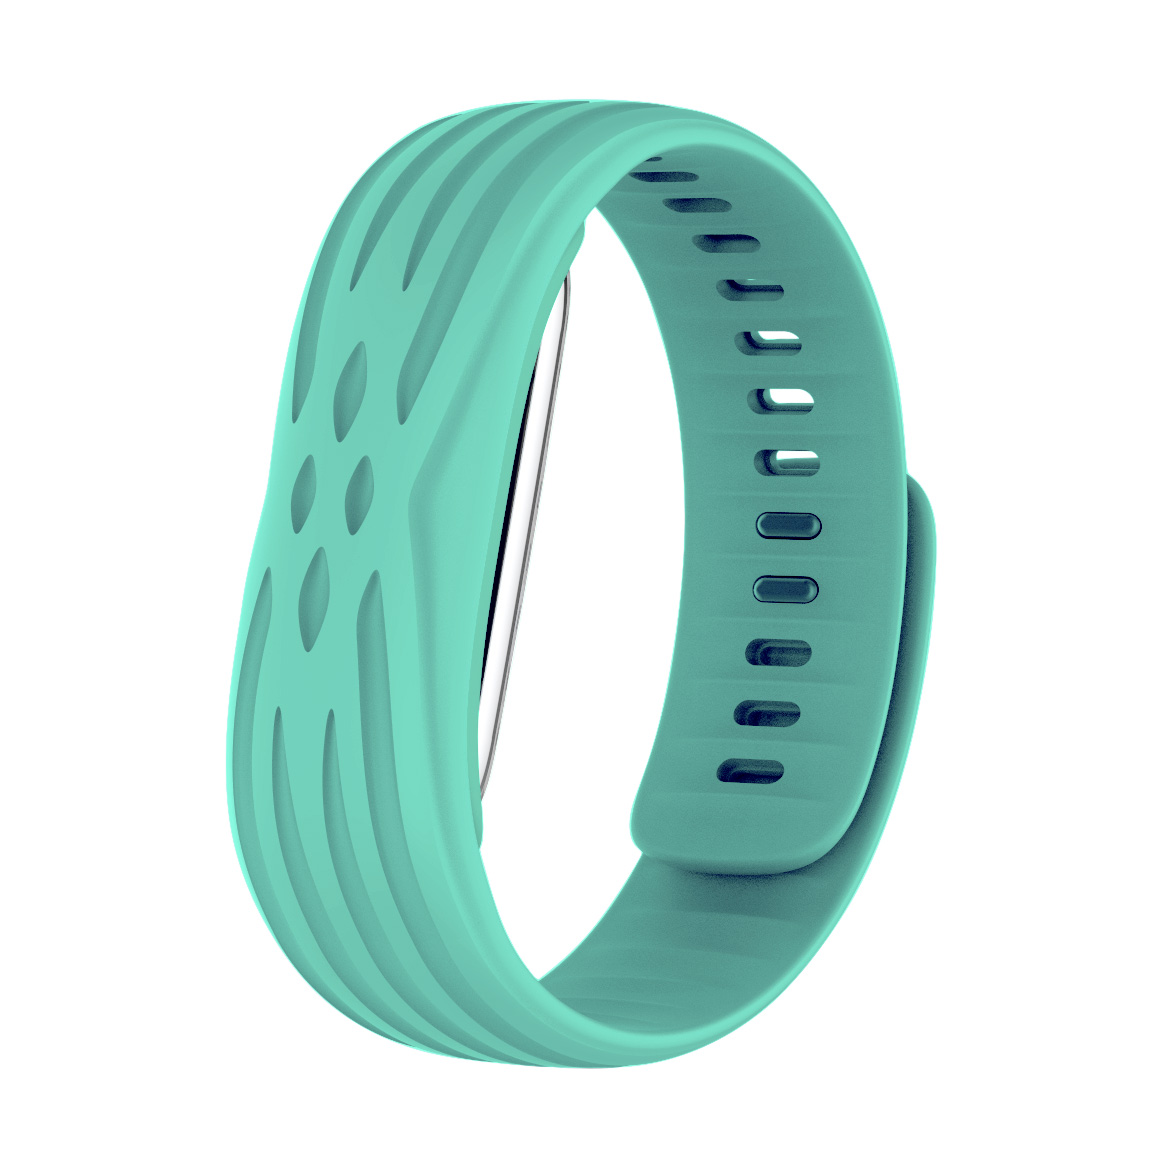 [US Direct] Bluetooth 4.1 Wristband Heart Rate Monitor Smart Watch with USB Plug Green